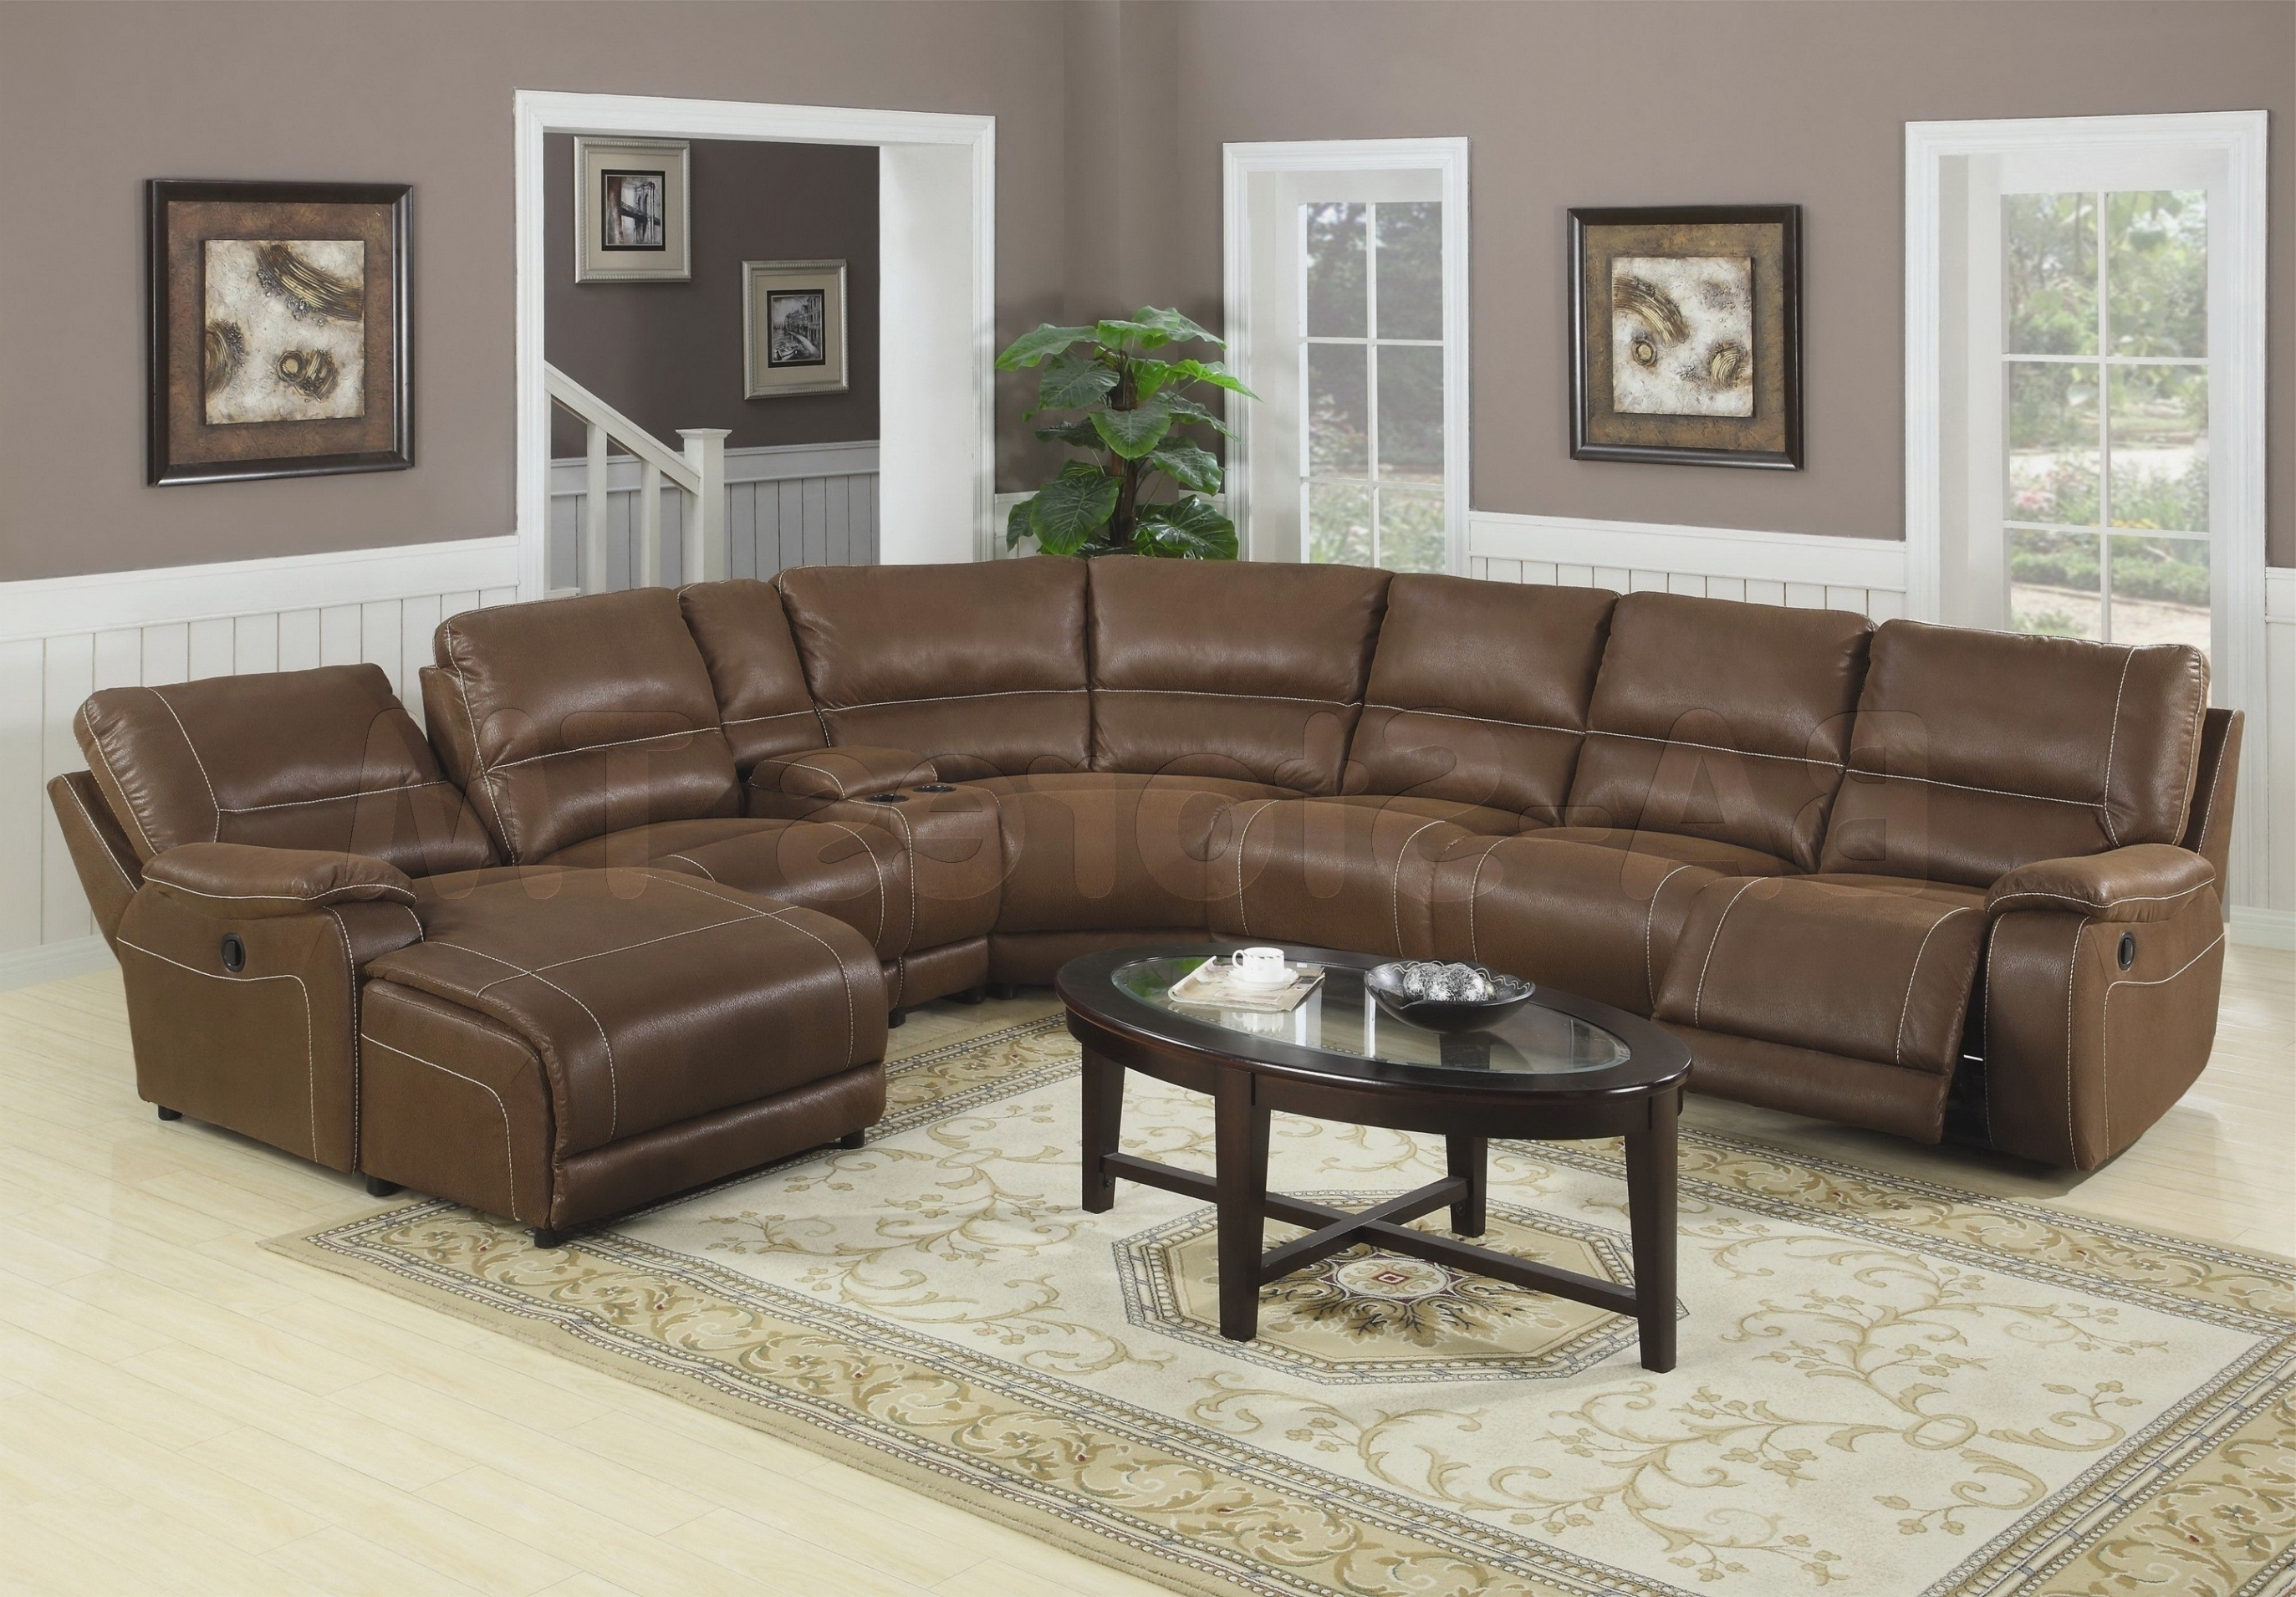 Elegant The Brick Sectionals – Buildsimplehome Throughout Best And Newest The Brick Sectional Sofas (View 4 of 20)